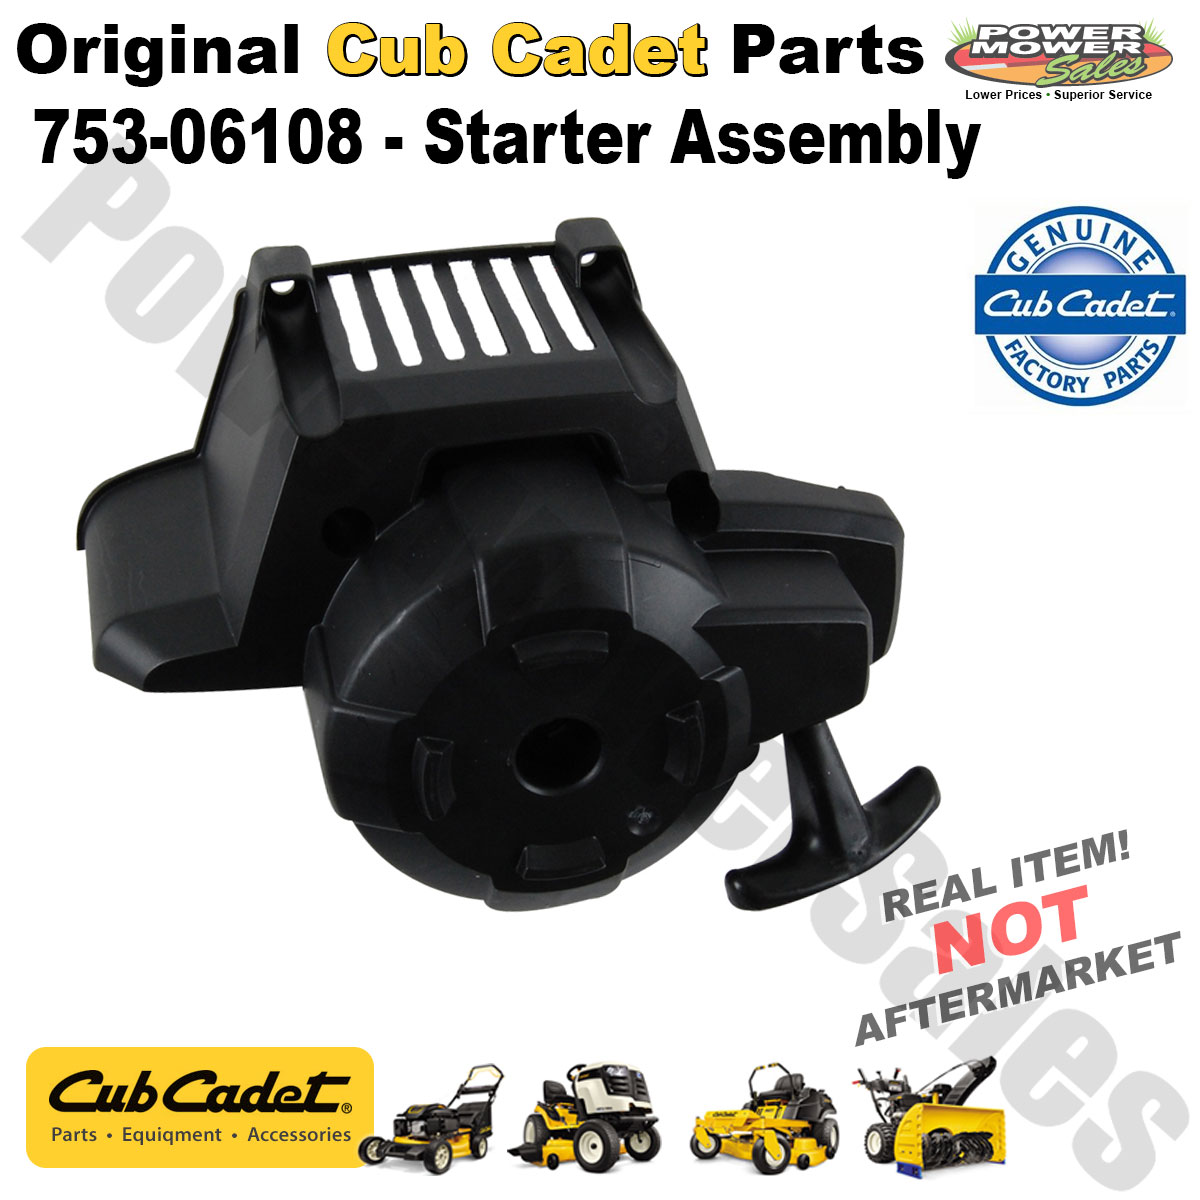 hight resolution of cub cadet replacement starter assembly for string trimmer others 753 06108